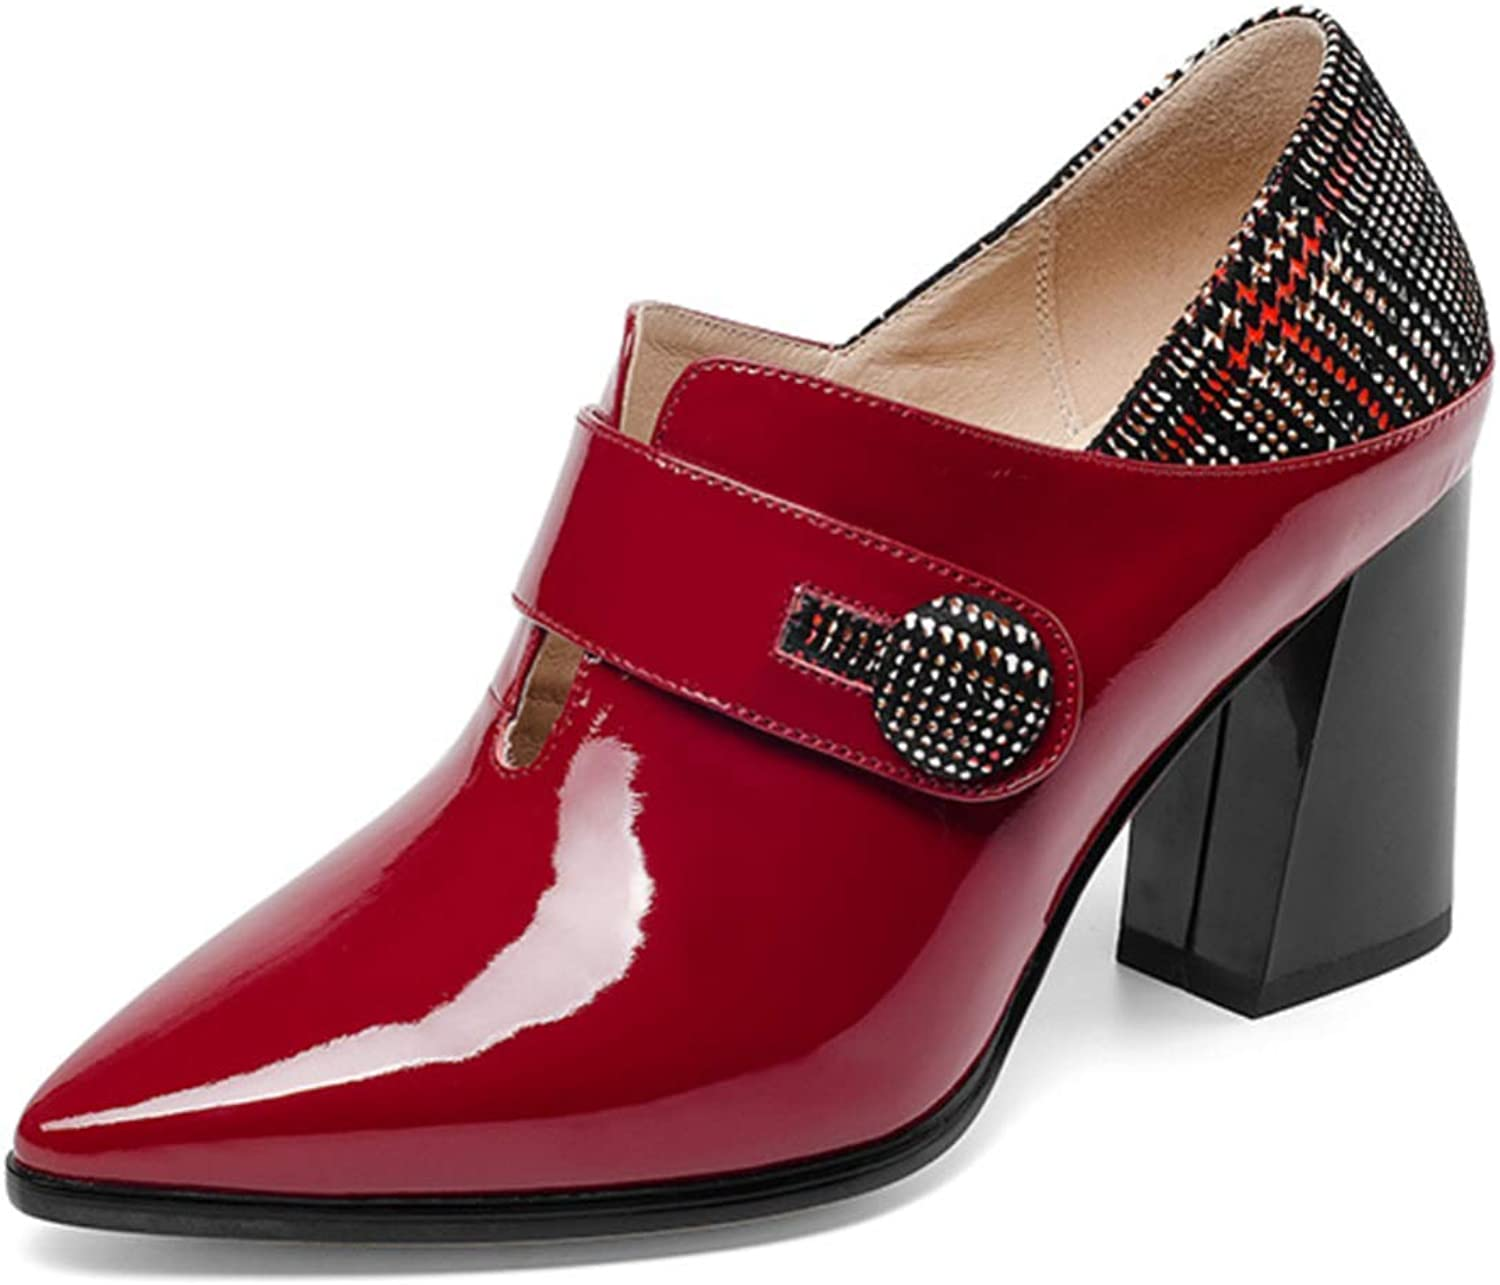 Shiney Women's Leather Single shoes Heeled Cow Patent Leather